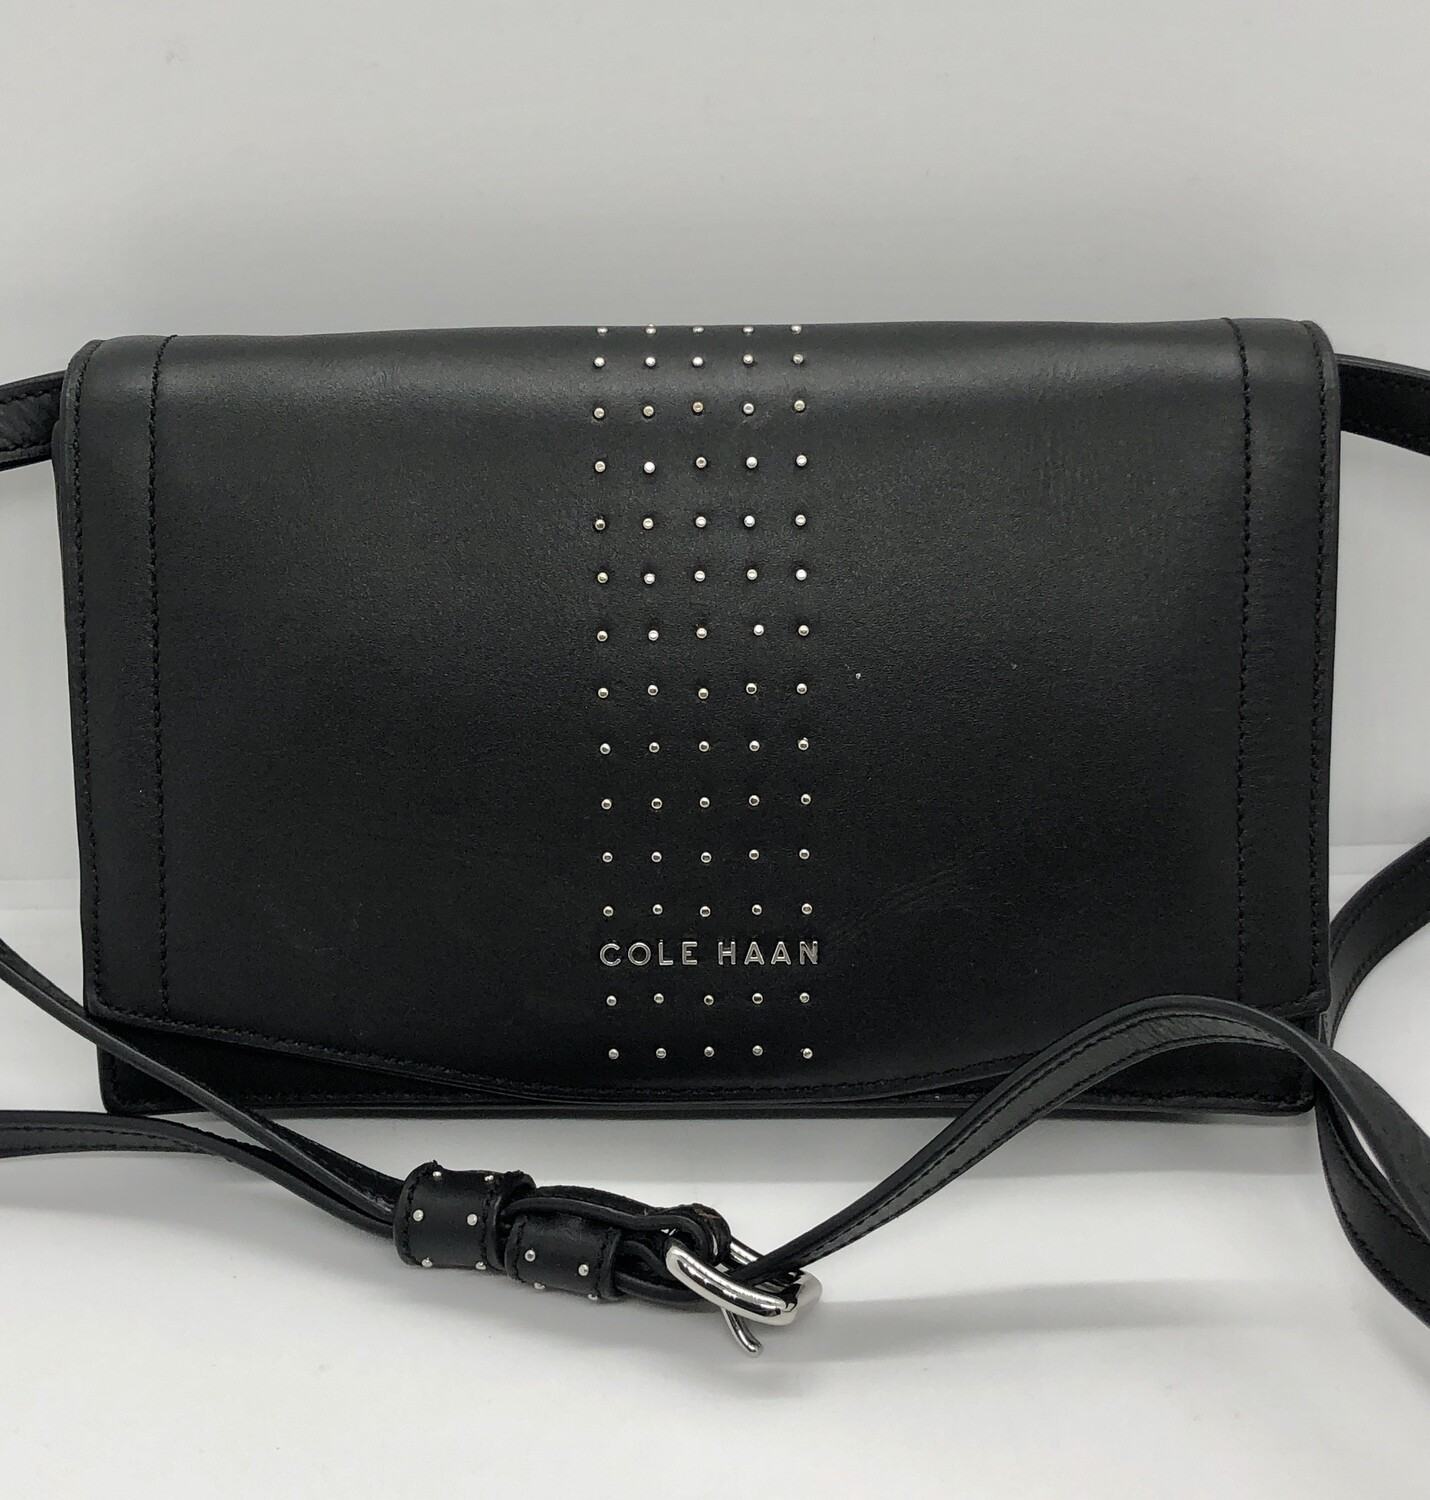 Cole Haan Black Leather Silver Rivet Crossbody Handbag